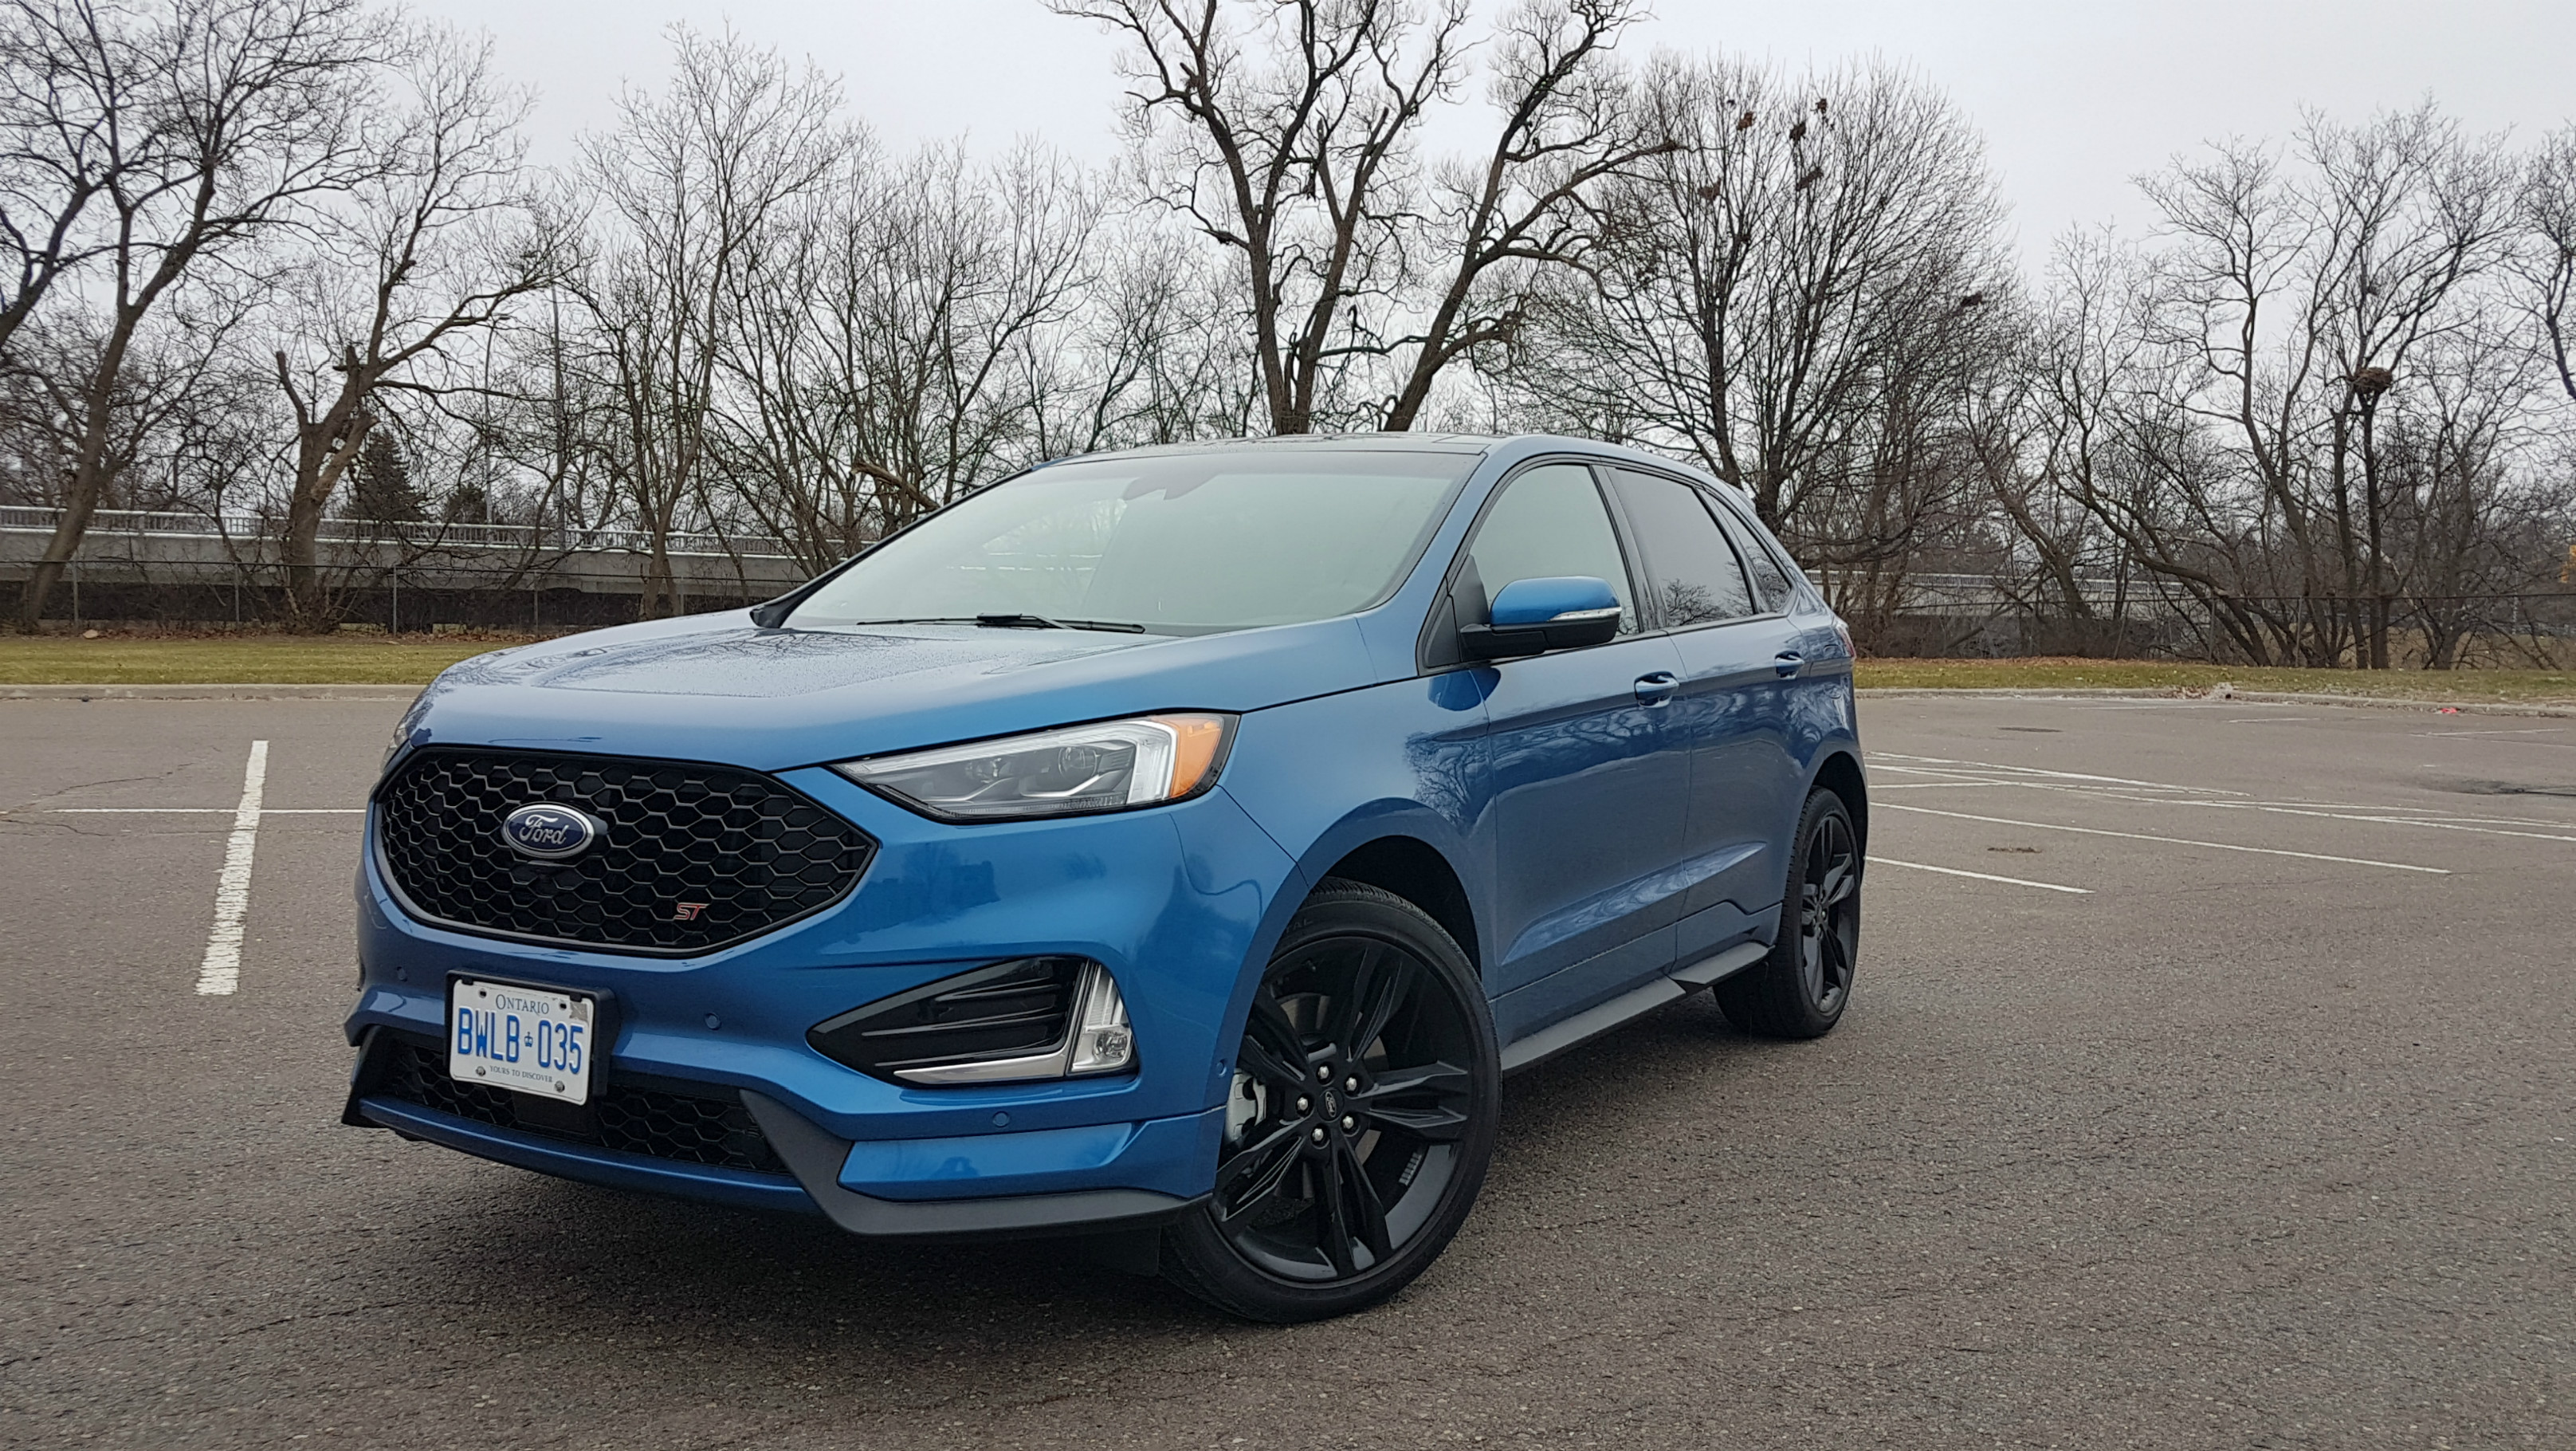 2019 Ford Edge: News, Changes, Arrival >> 2019 Ford Edge News Changes Arrival Upcoming New Car Release 2020